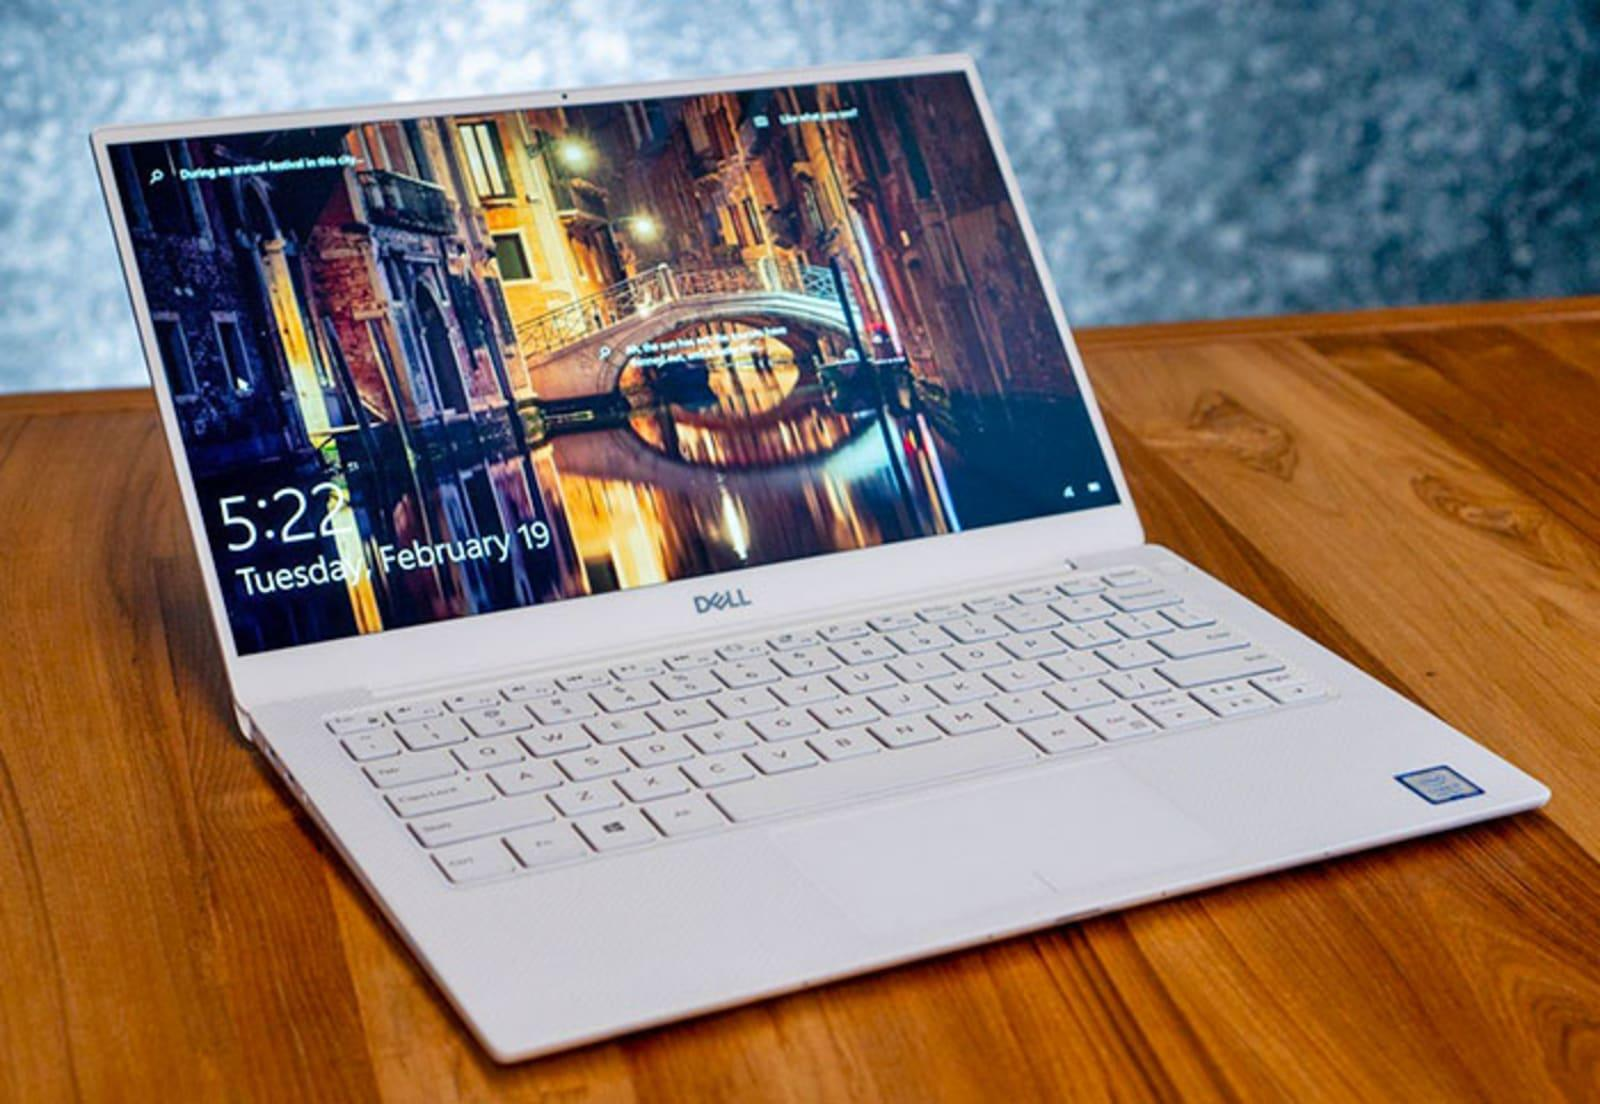 Best Windows Laptop 2021 Is the Dell XPS 13 the best Windows laptop around? | Engadget